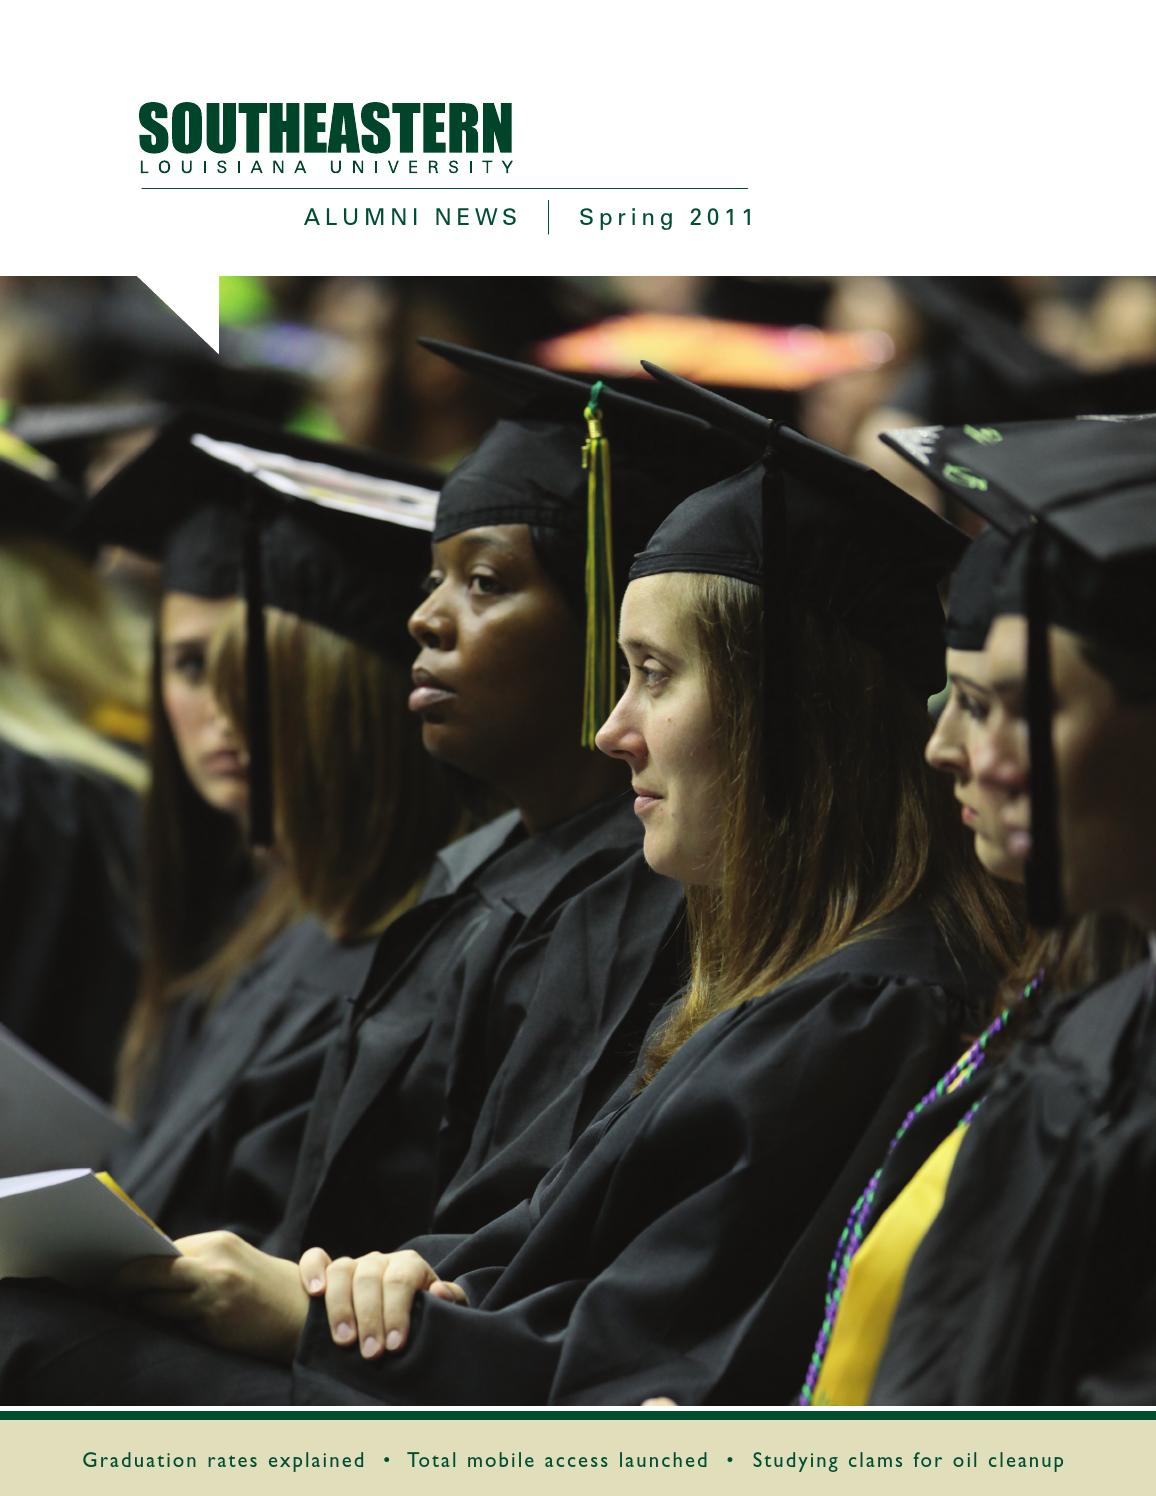 Alumni News Spring 2011 by oursoutheastern - issuu